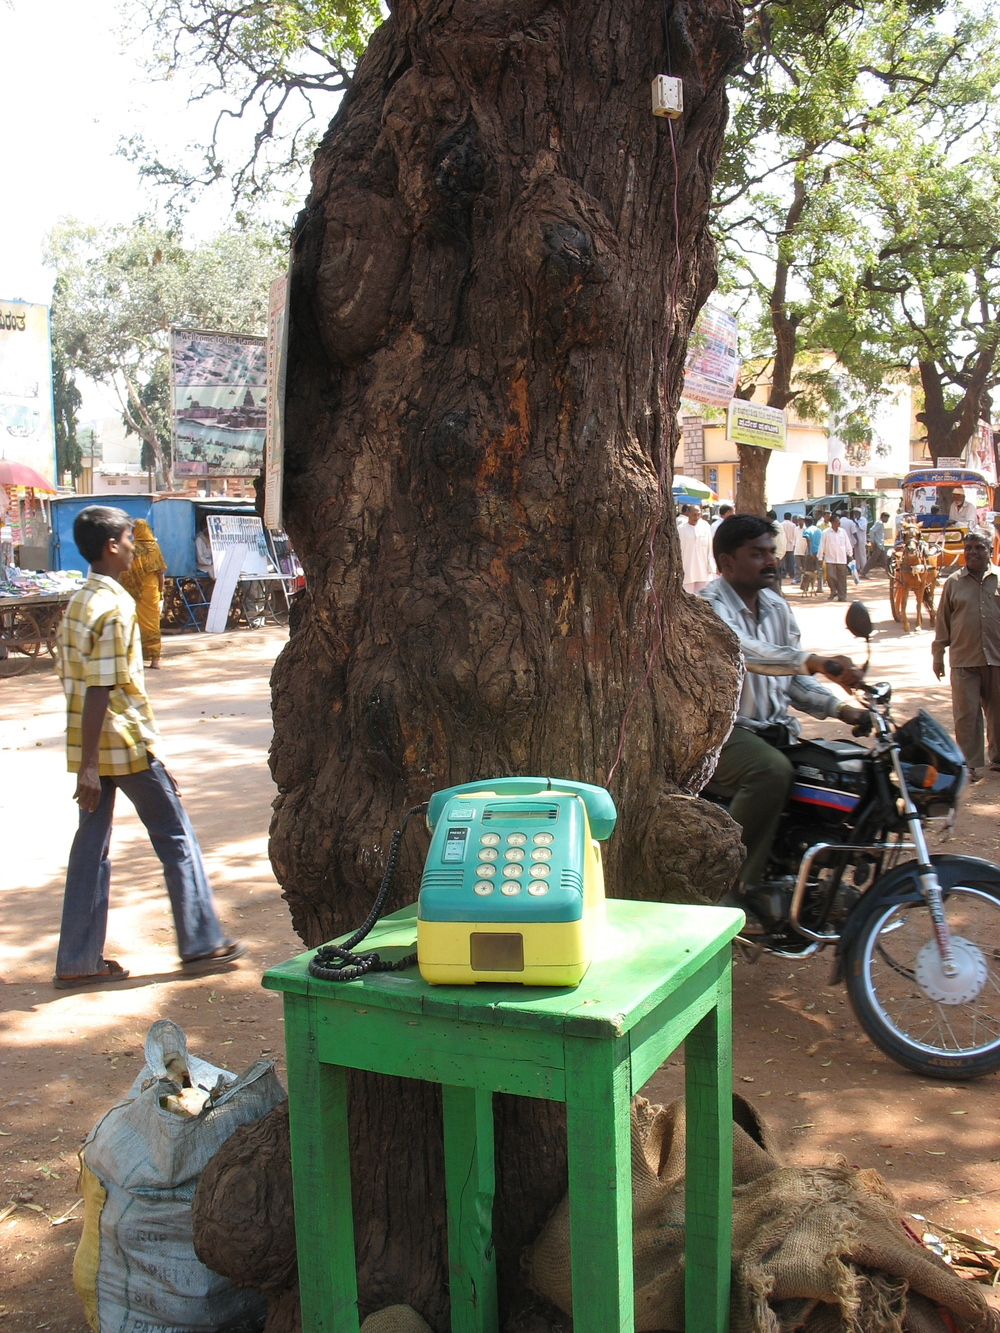 Thankfully we've moved past this in Europe. A payphone, while on some in travels, in India, 2008